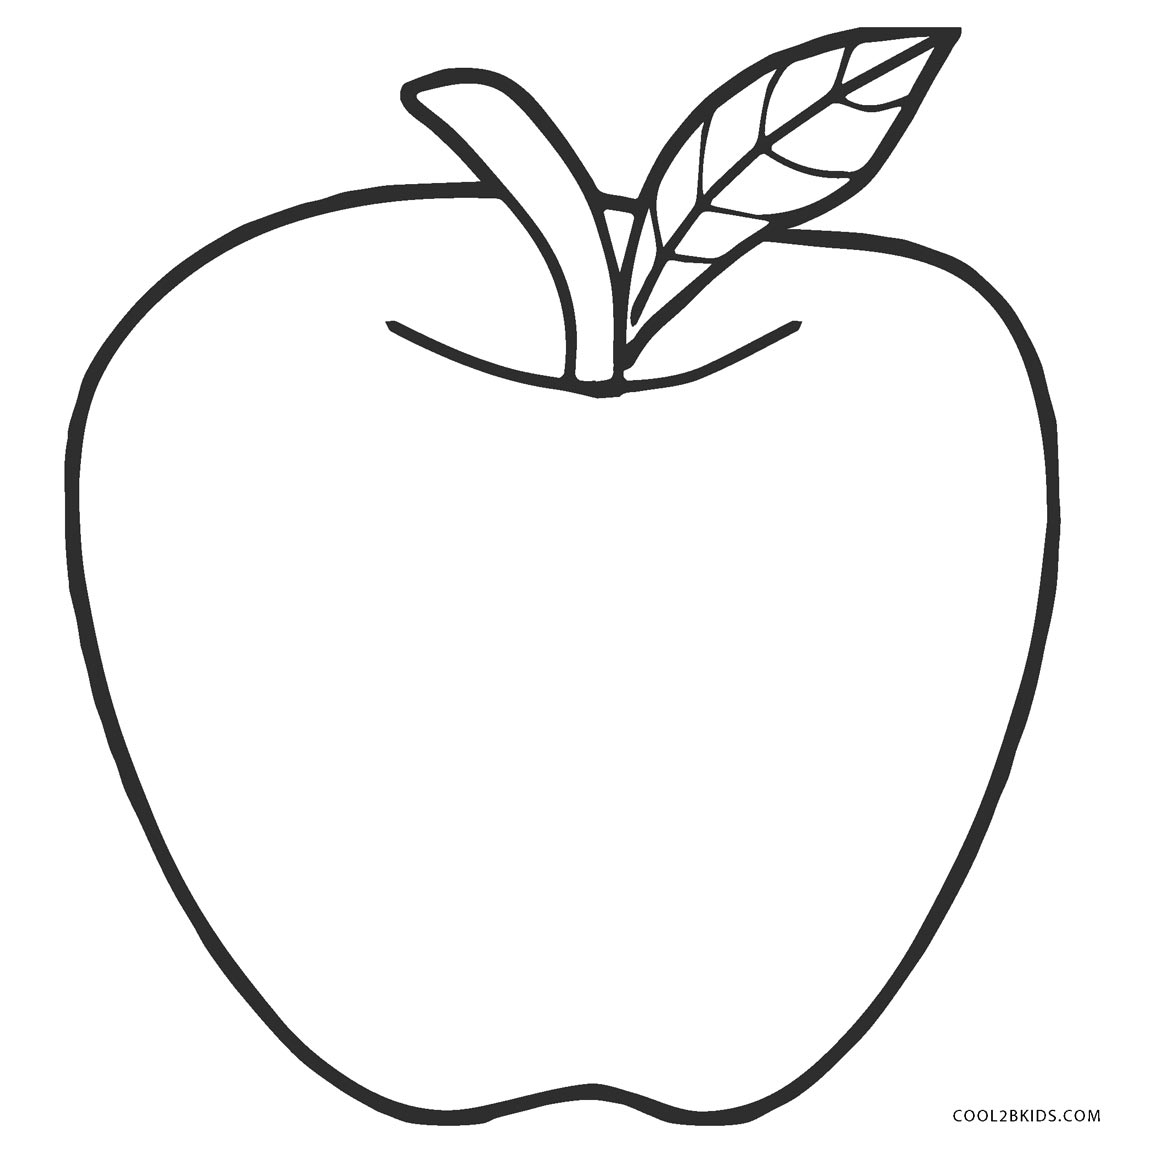 coloring pages for apples apples coloring pages team colors for apples coloring pages